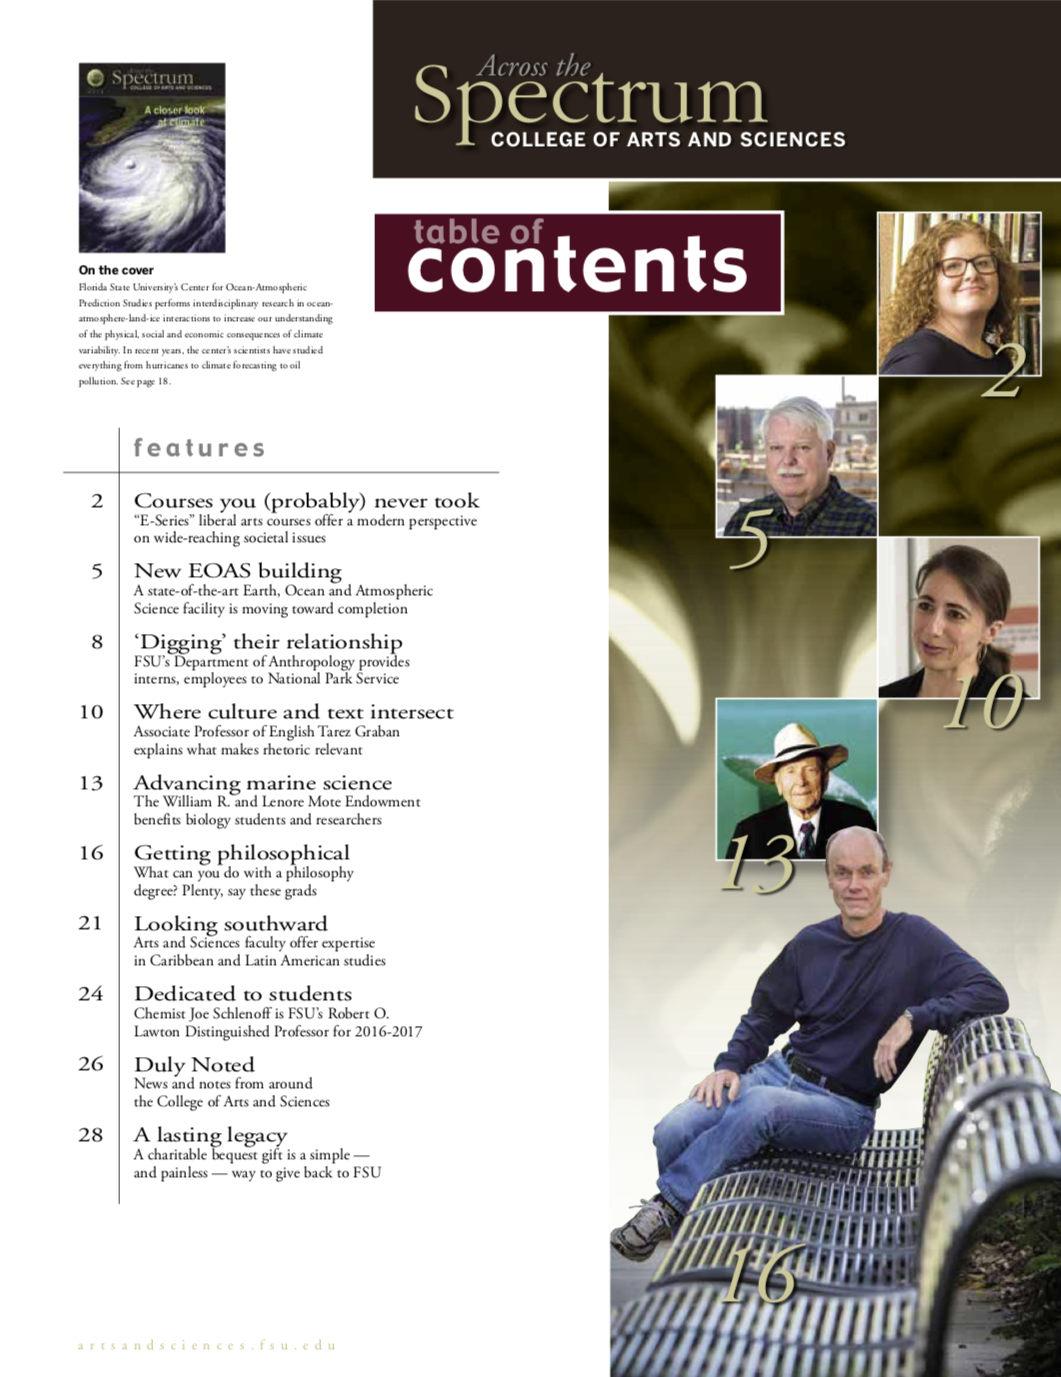 Across-the-spectrum-mag-spring-18-philosophy-features-mahaffey-and-rawling.png